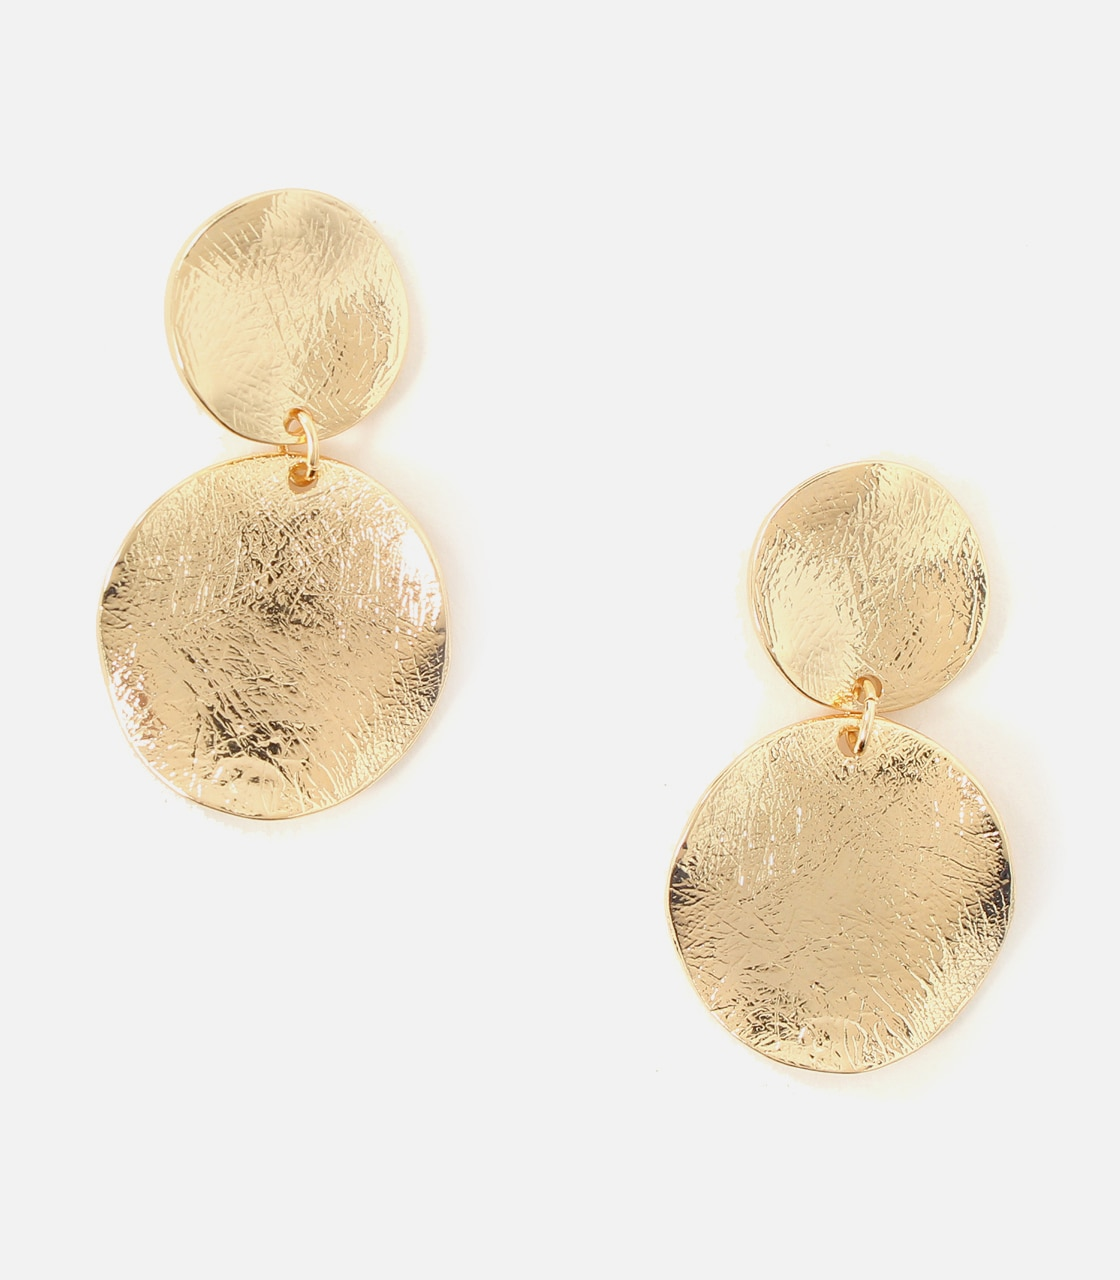 【AZUL BY MOUSSY】BUMPY MERAL ROUND EARRINGS 詳細画像 L/GLD 1